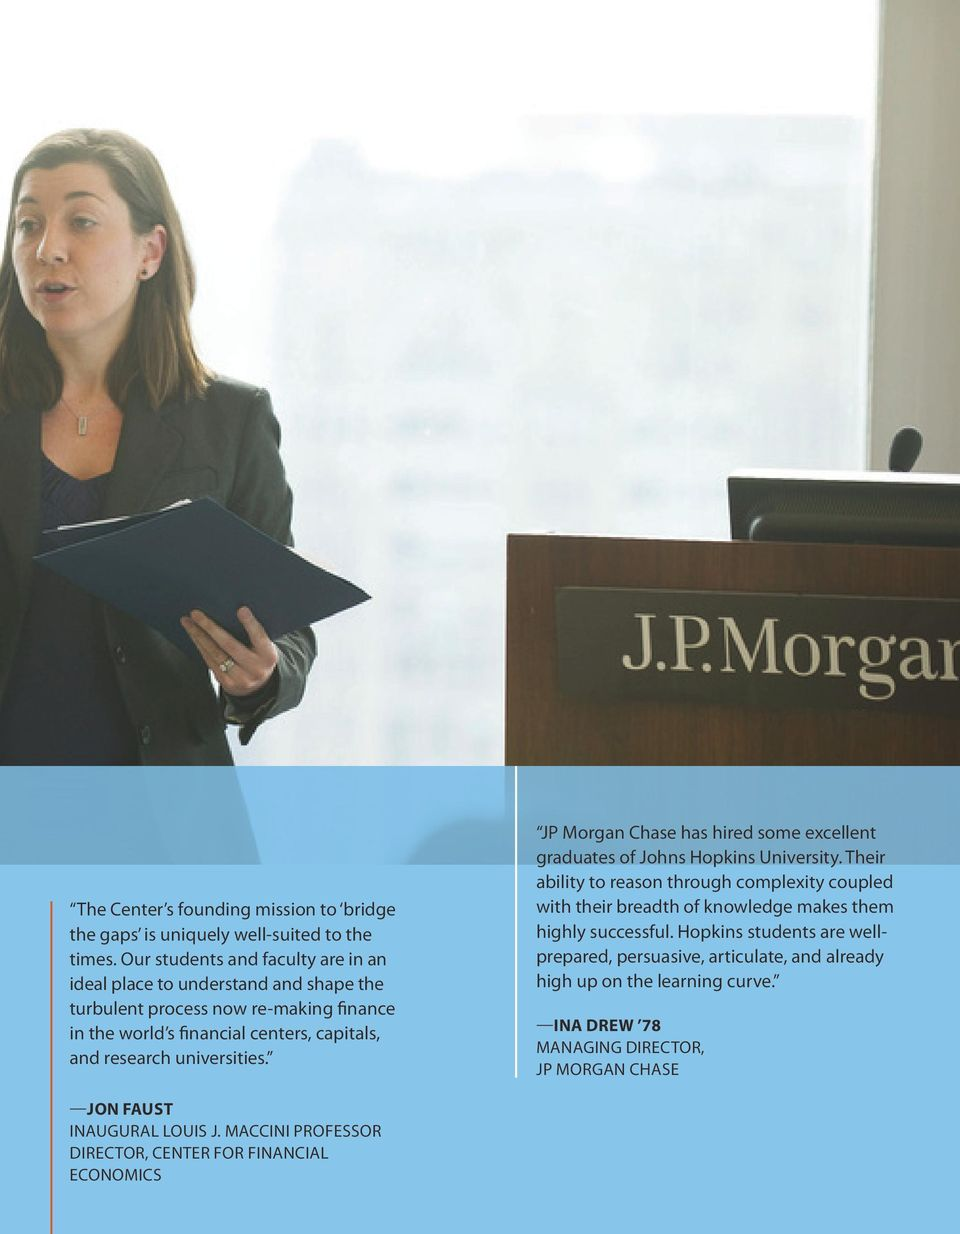 universities. JP Morgan Chase has hired some excellent graduates of Johns Hopkins University.